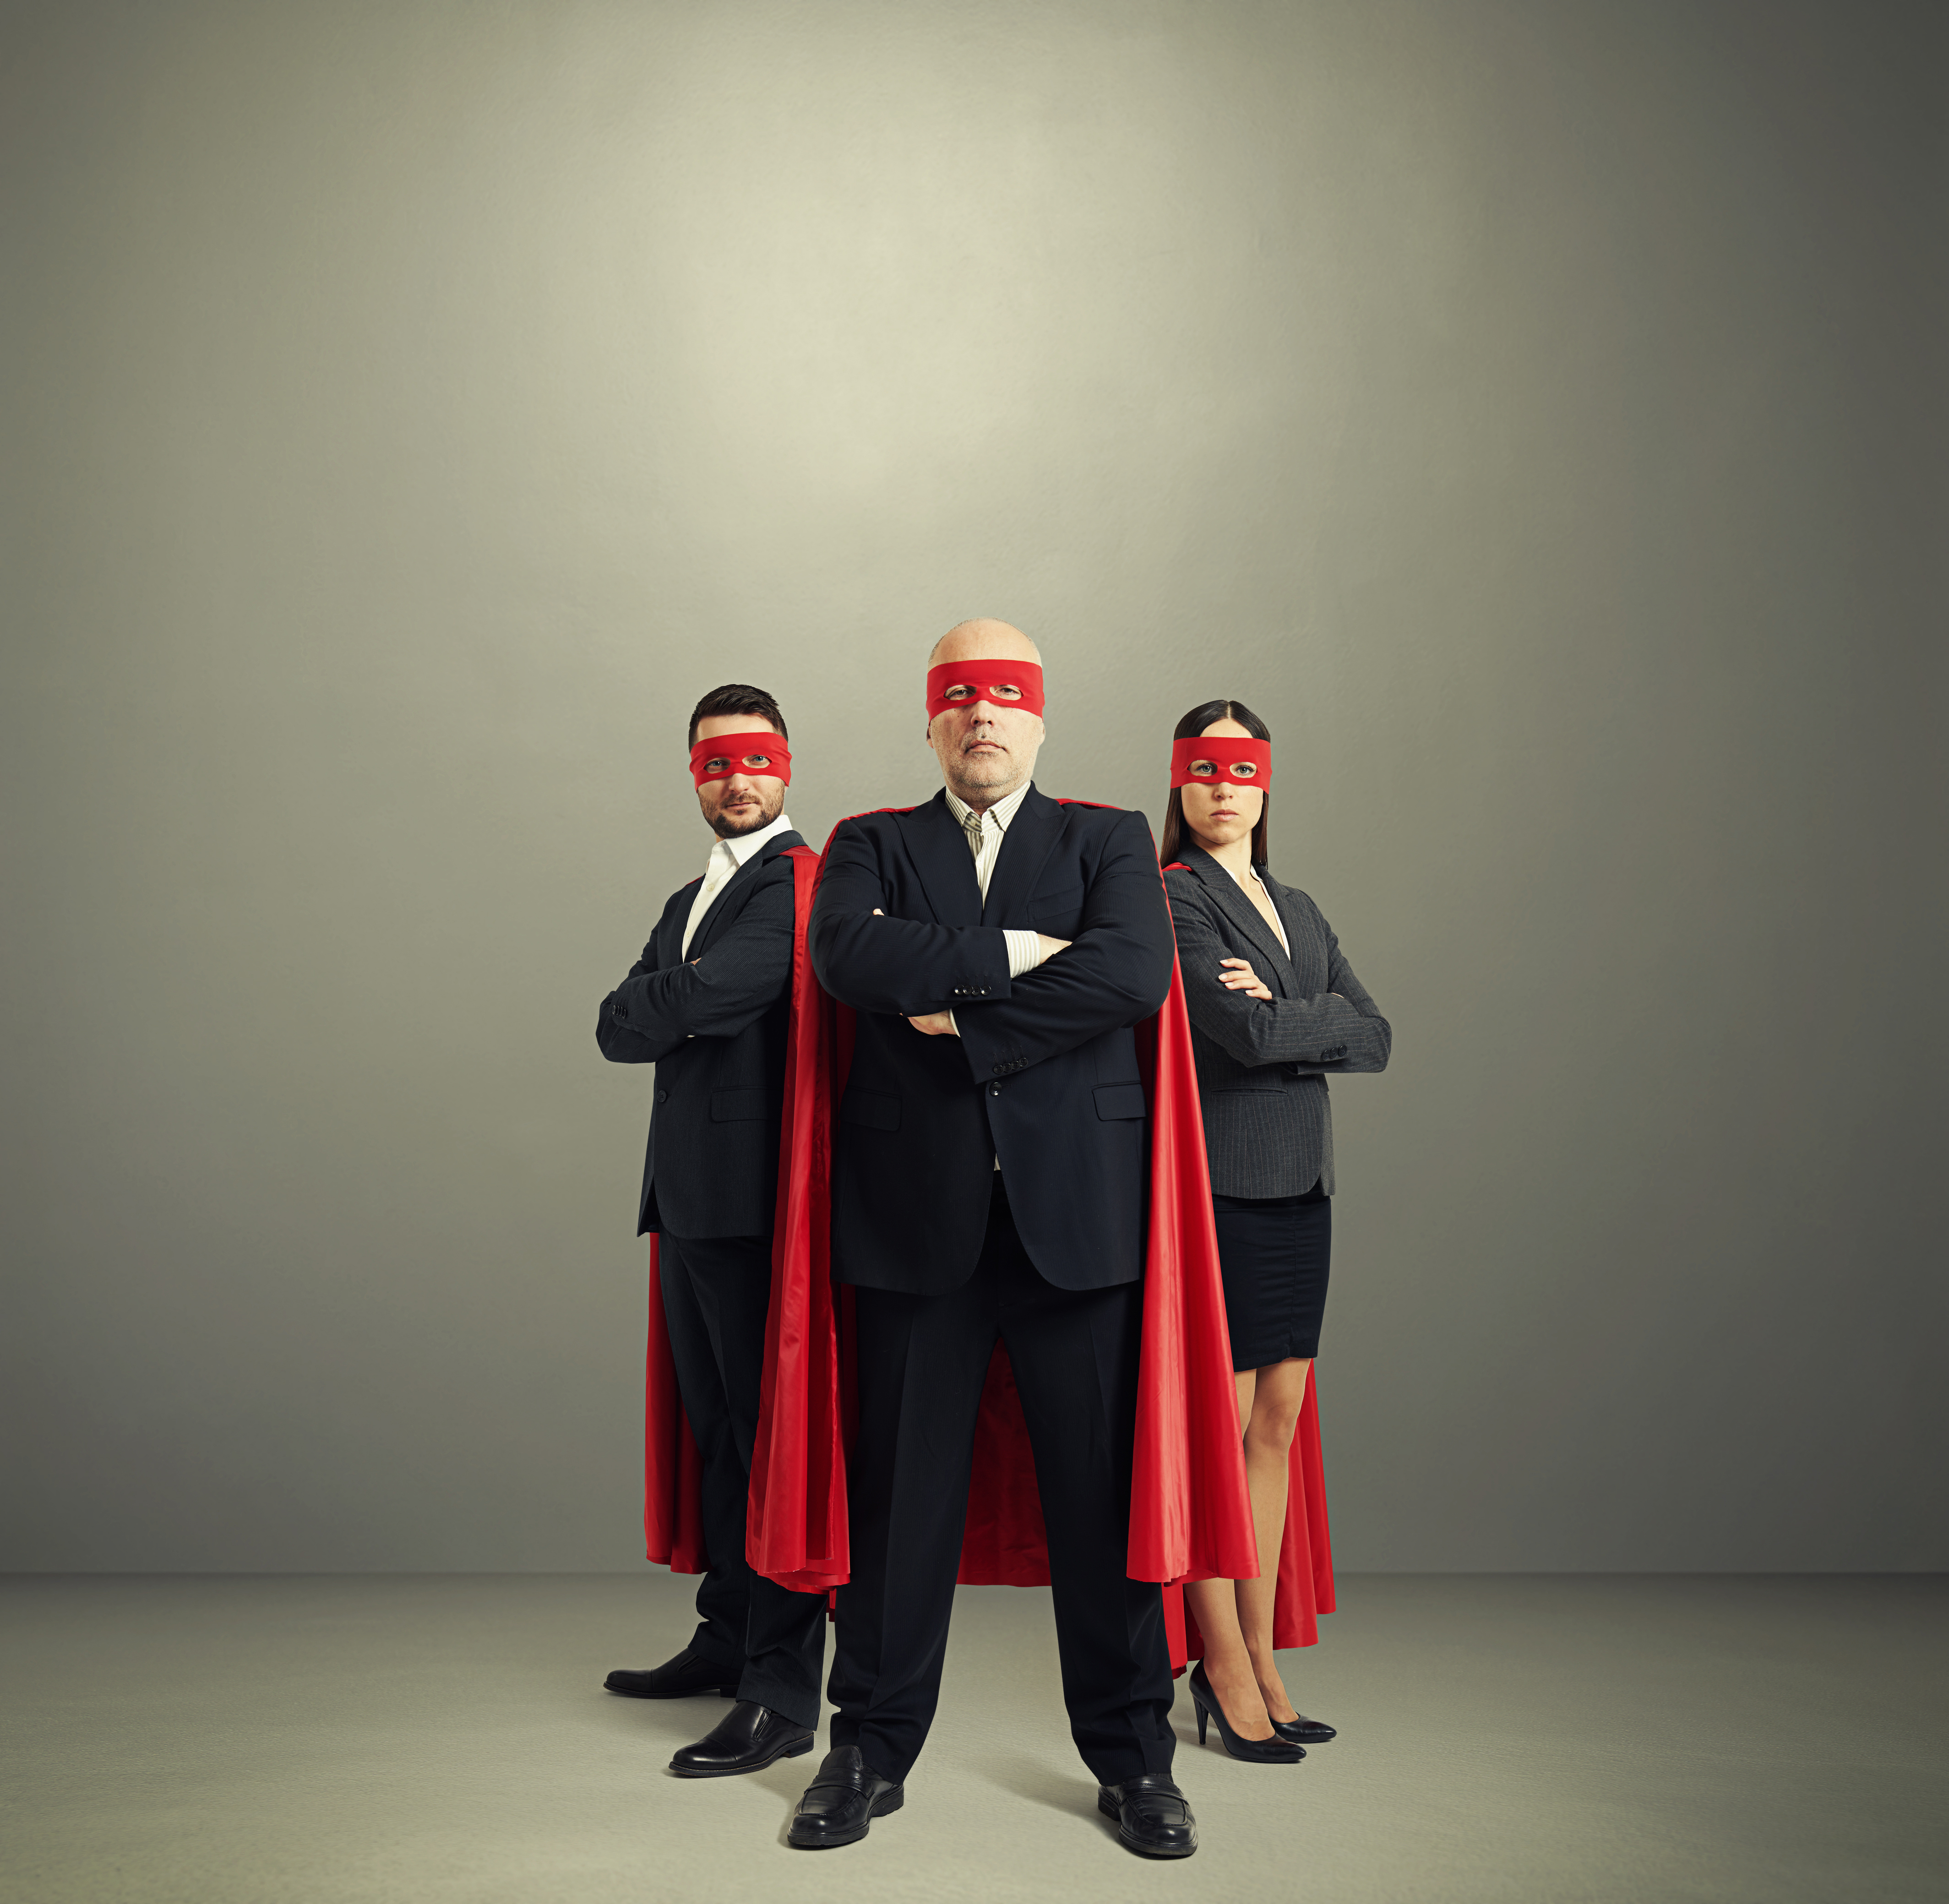 Three business people penetration testing super heros with red capes and eye masks